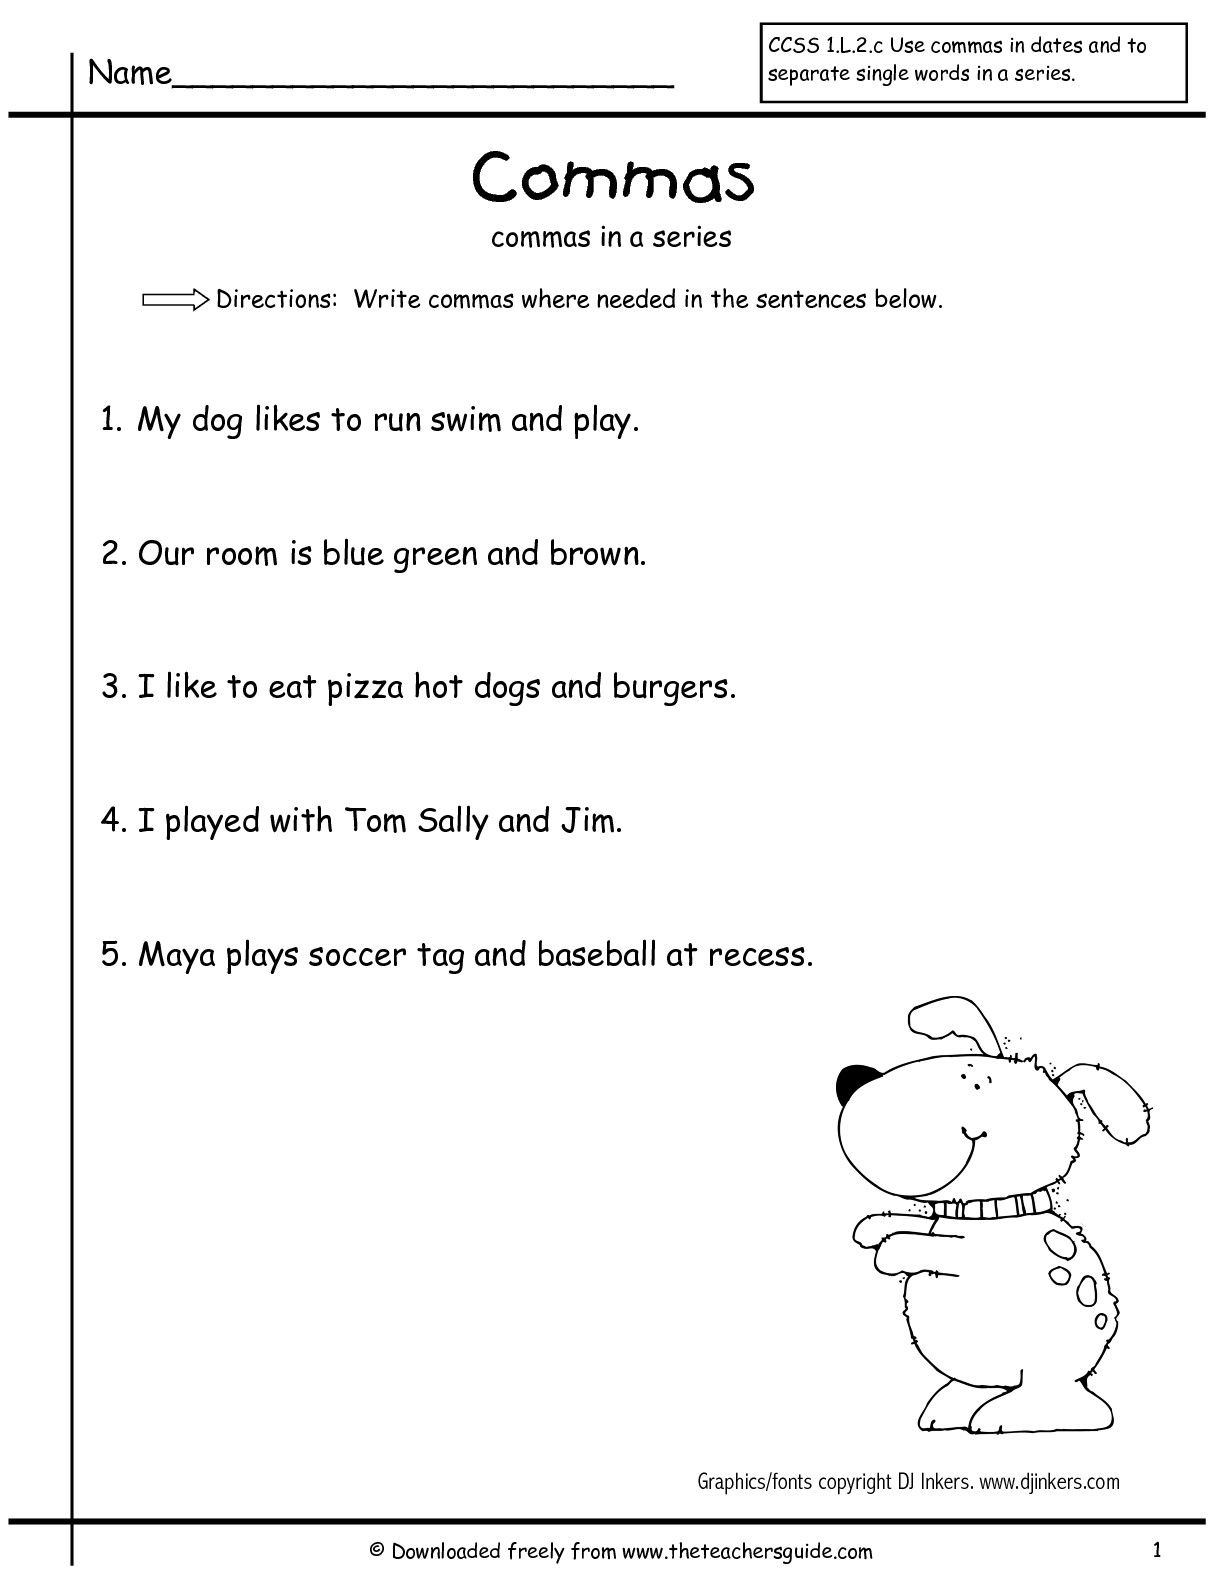 Commas In A Series Worksheet For 2nd Grade